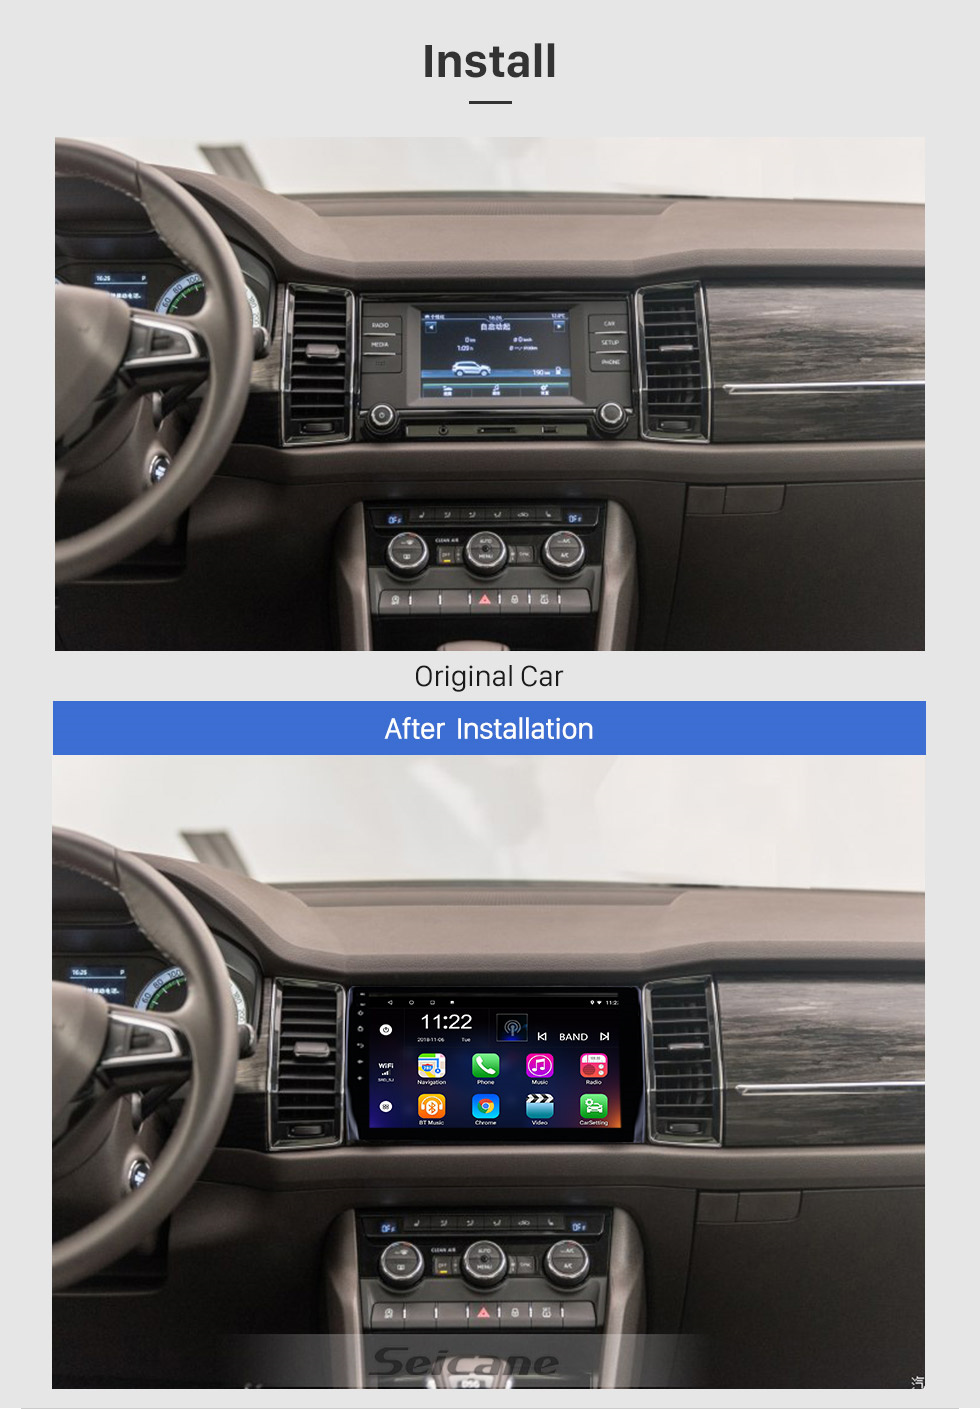 Seicane 10.1 inch Android 10.0 GPS Navigation Radio for 2017-2018 Skoda Diack with HD Touchscreen Bluetooth WIFI support Carplay Backup camera